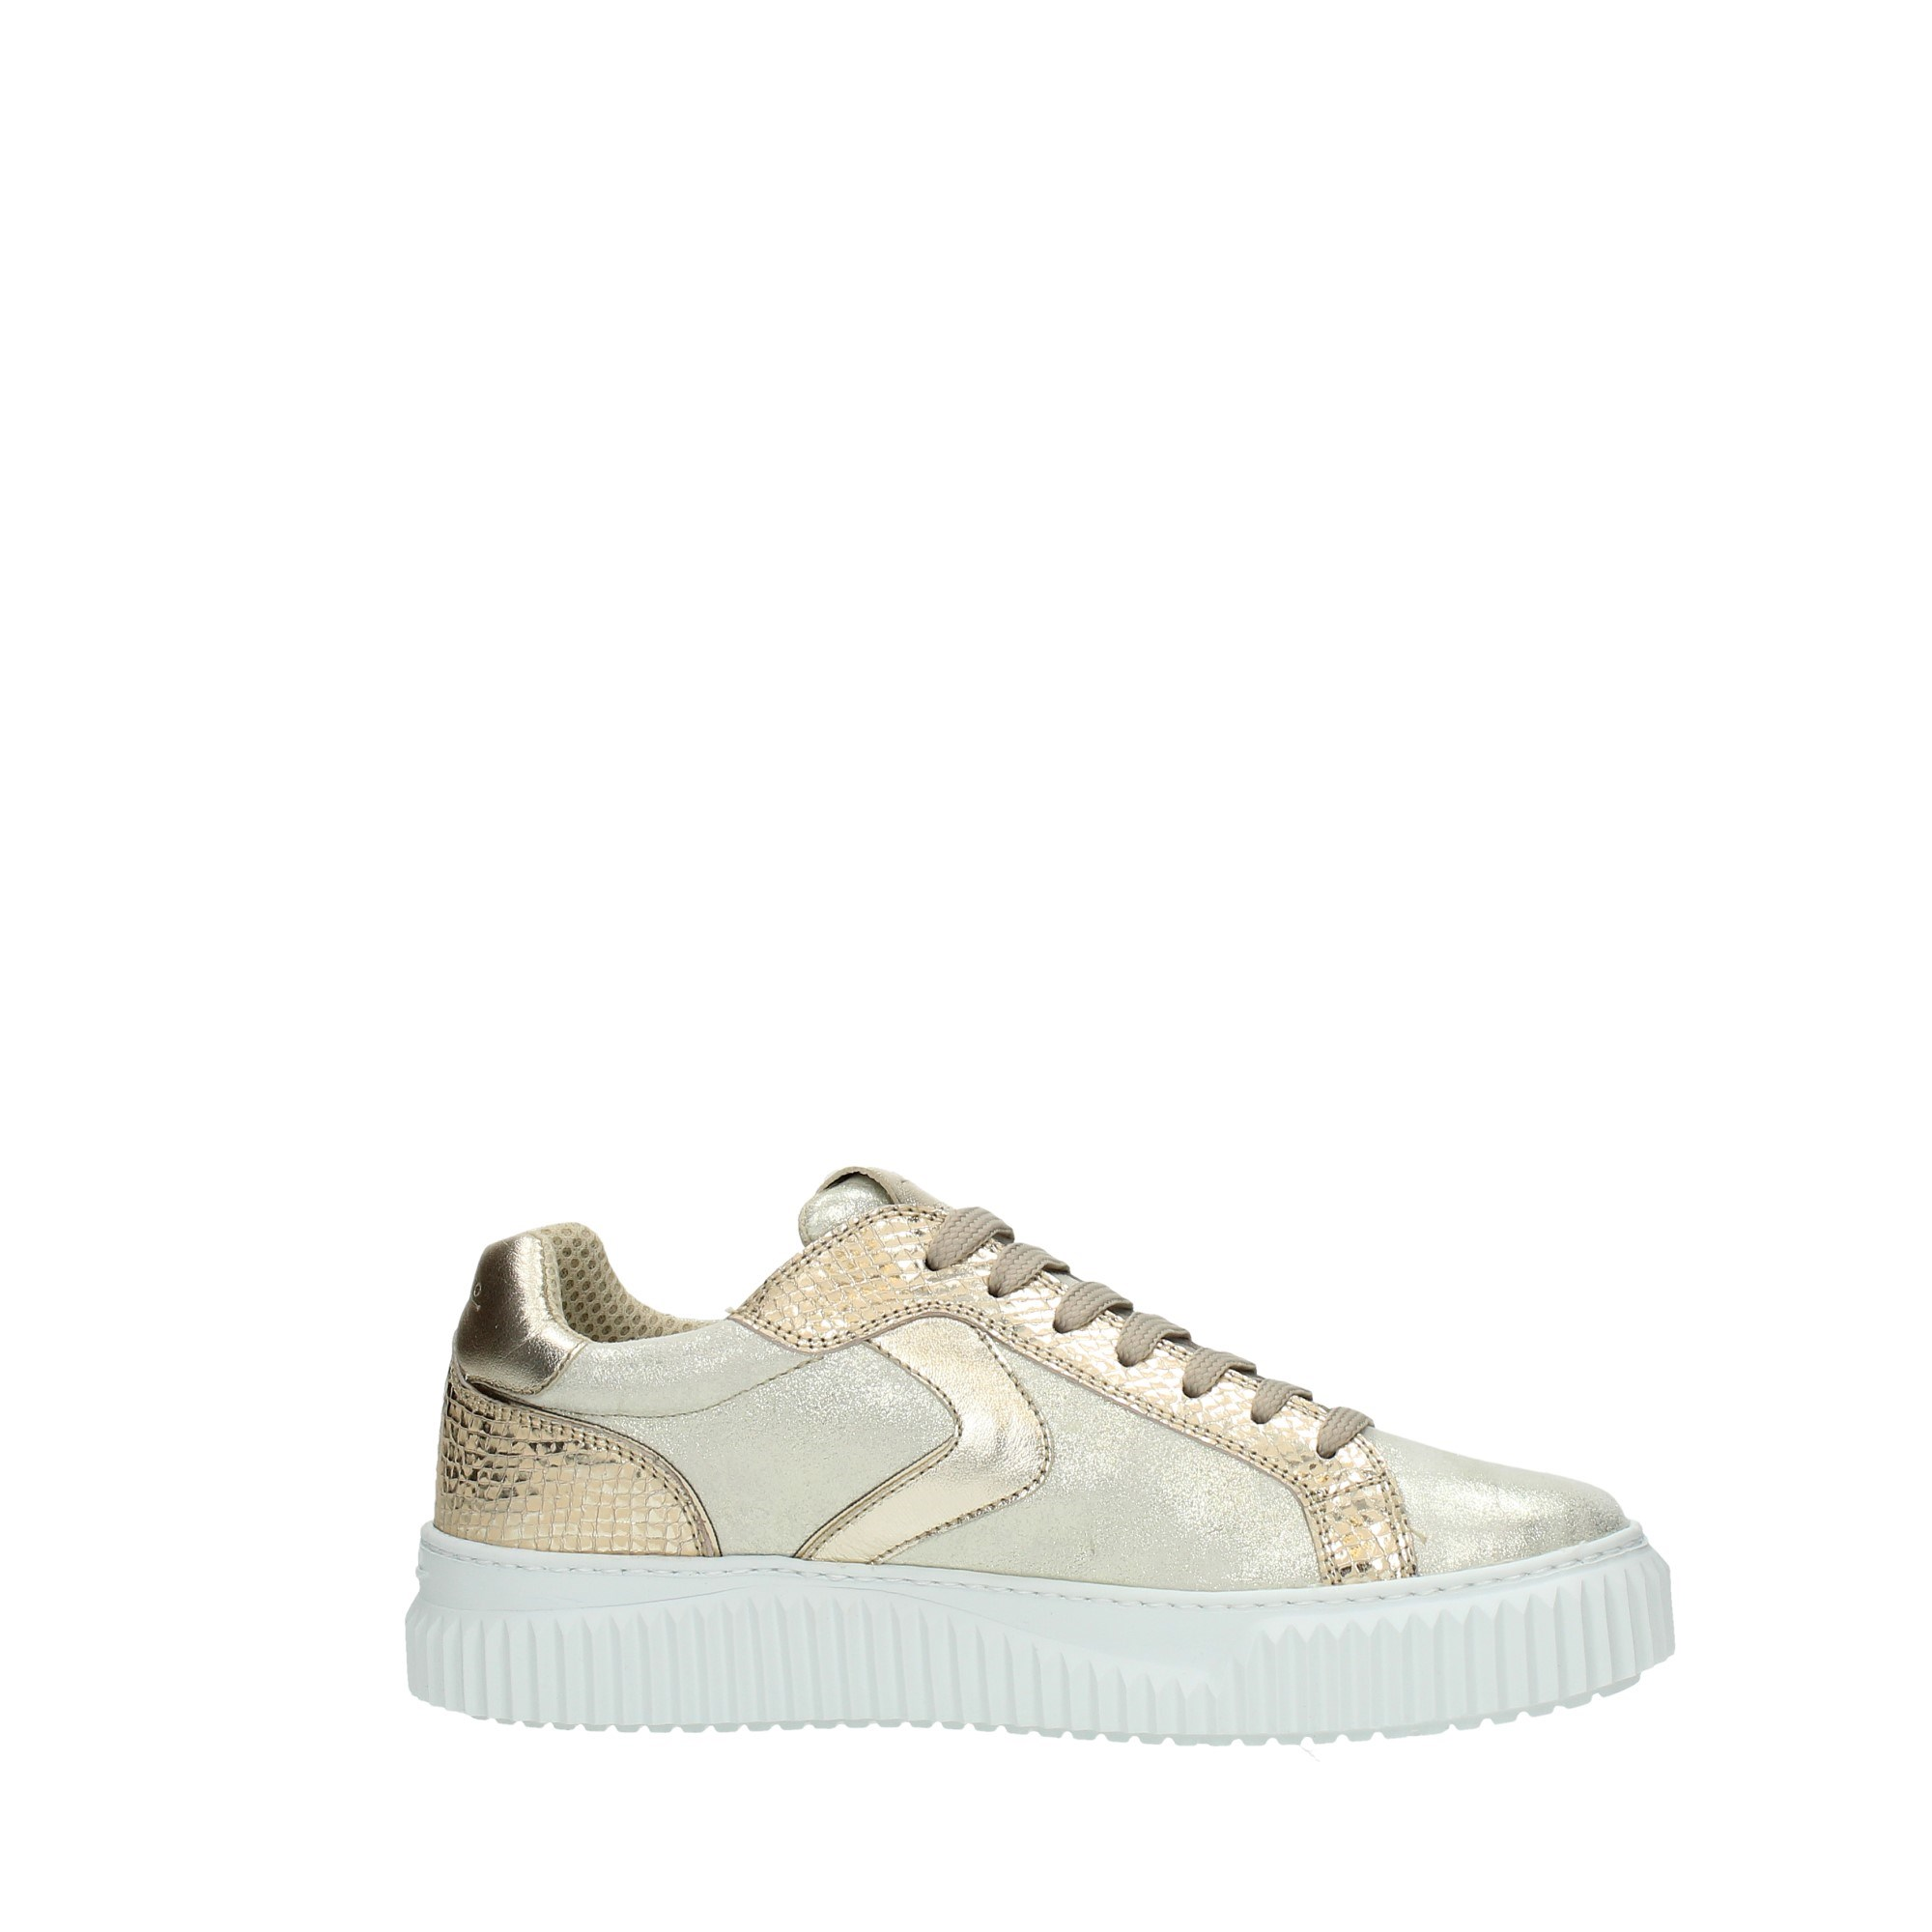 Voile Blanche Shoes Women Sneakers Platinum LIPARI METALLIC